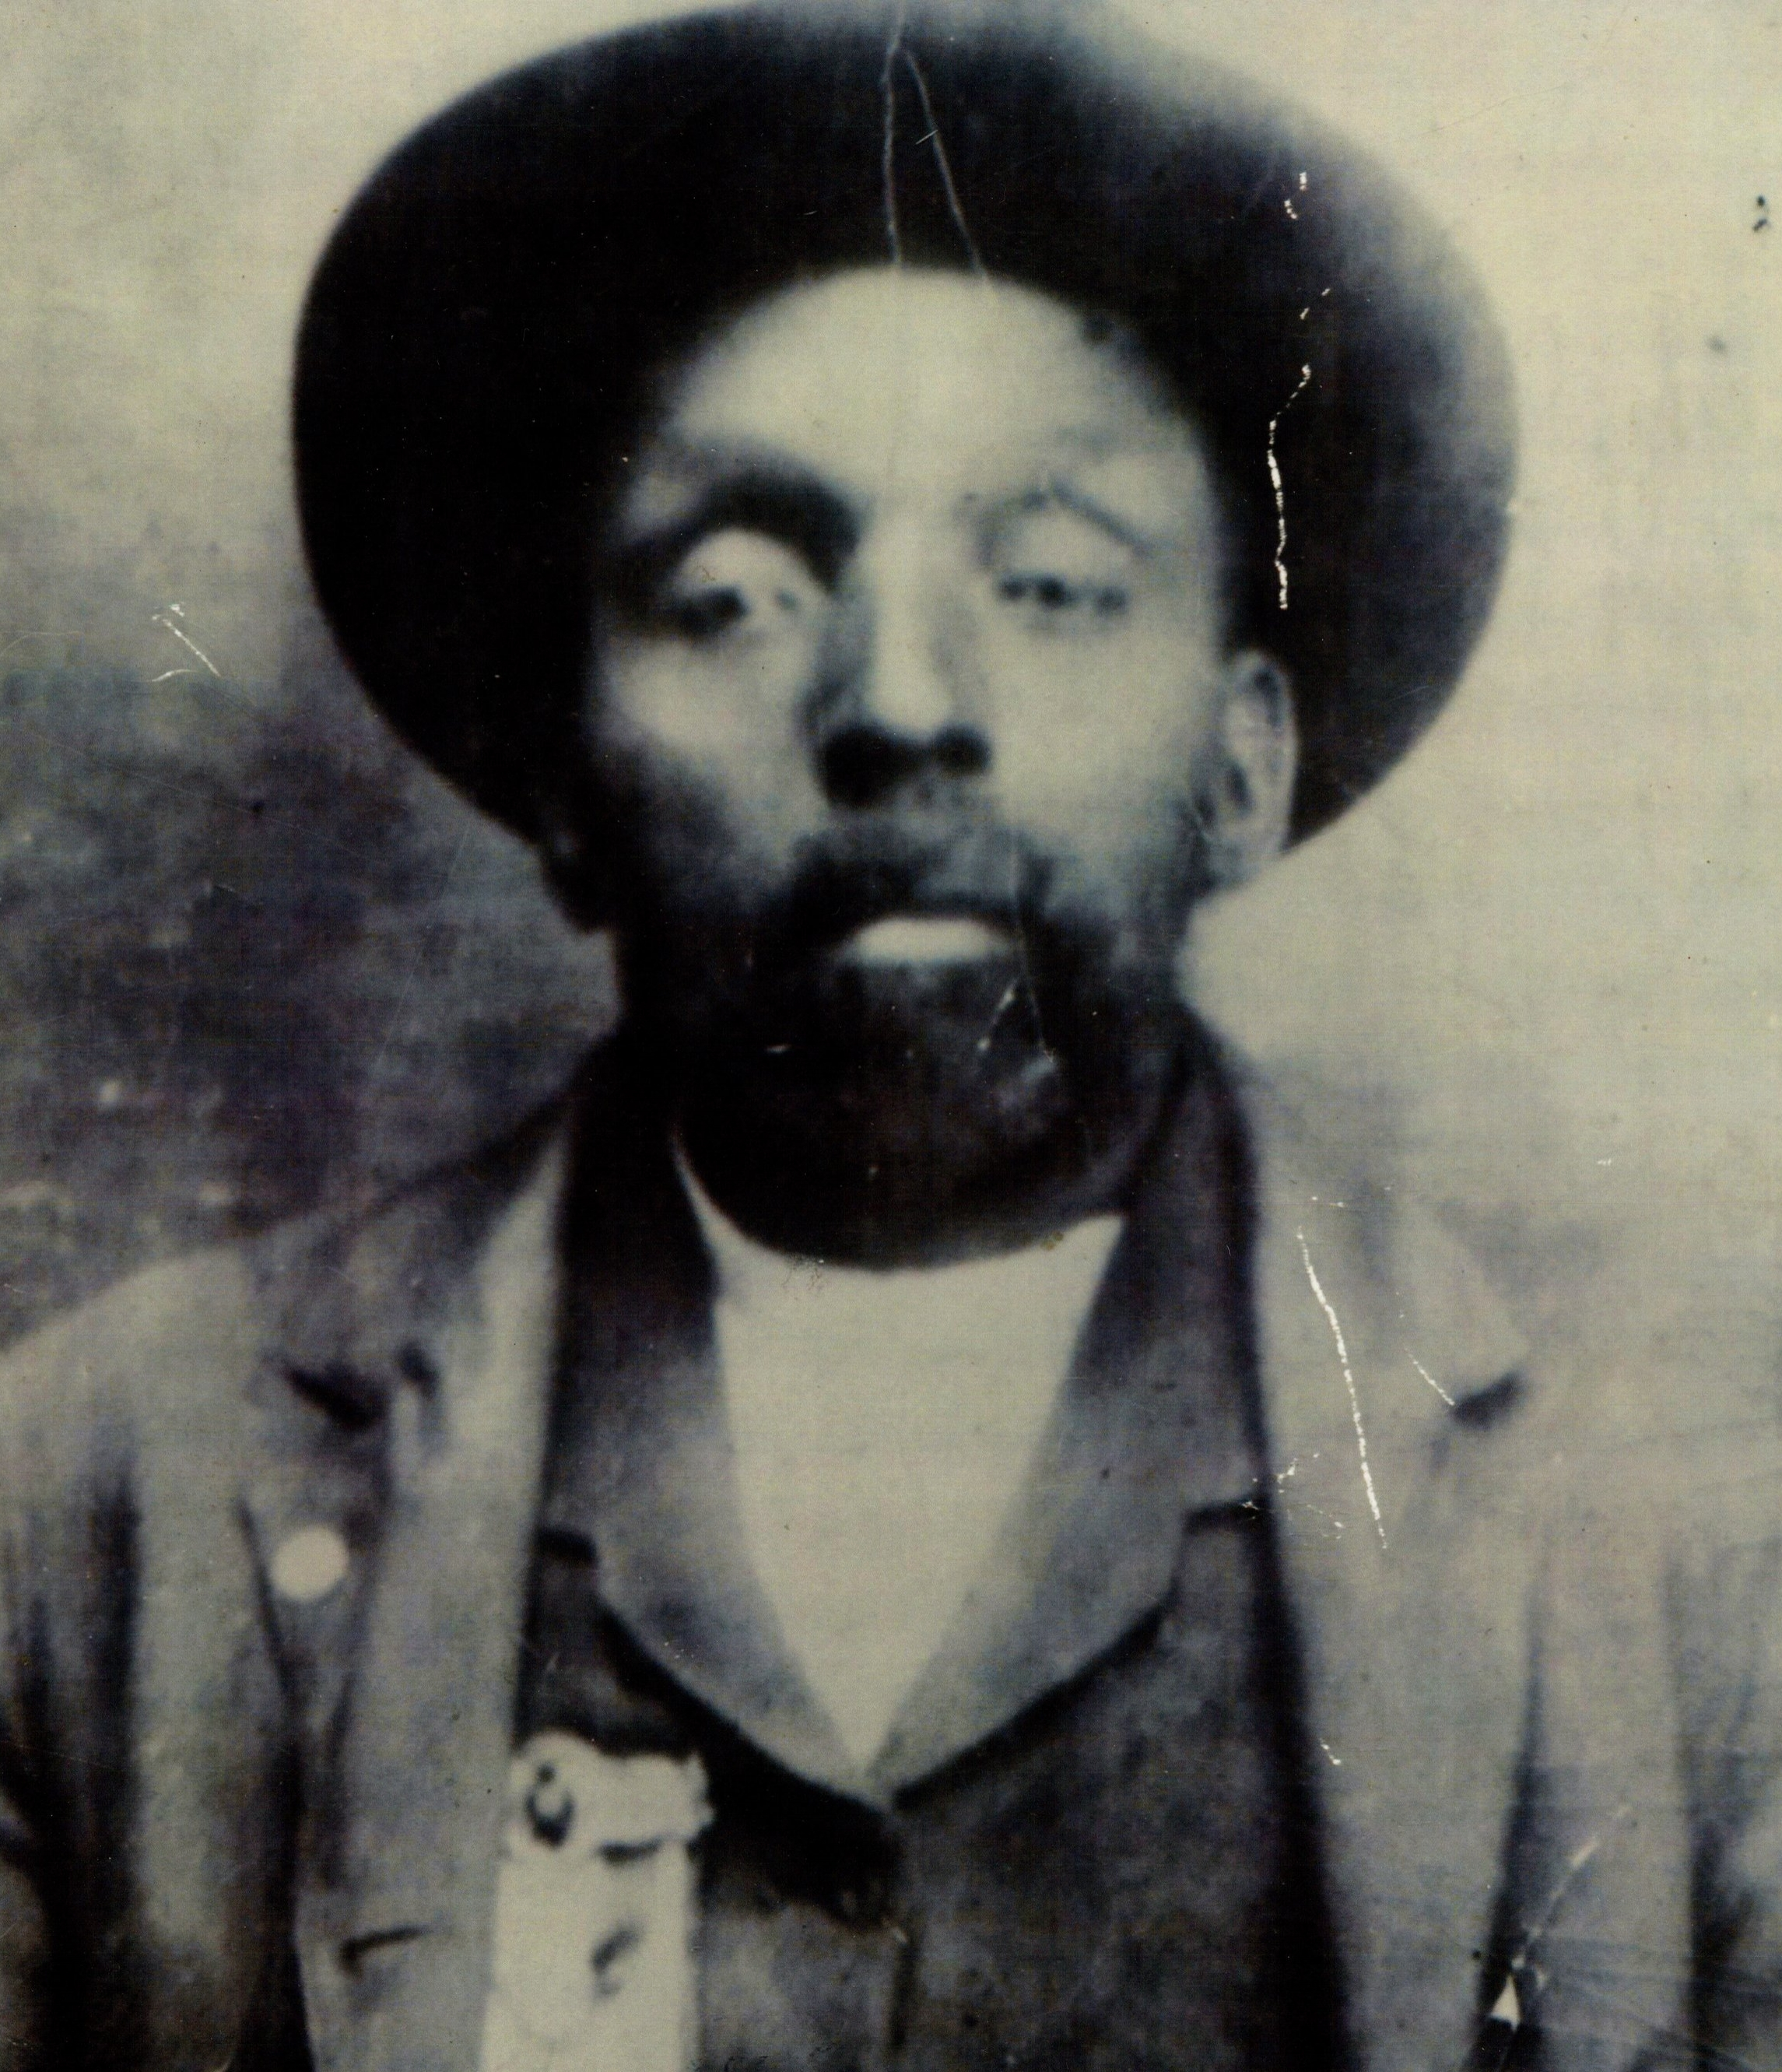 George Walker - Fought in the Civil War, and afterwards migrated to Solomon Grove from Memphis, TN. He donated land to build a church in Solomon Grove.